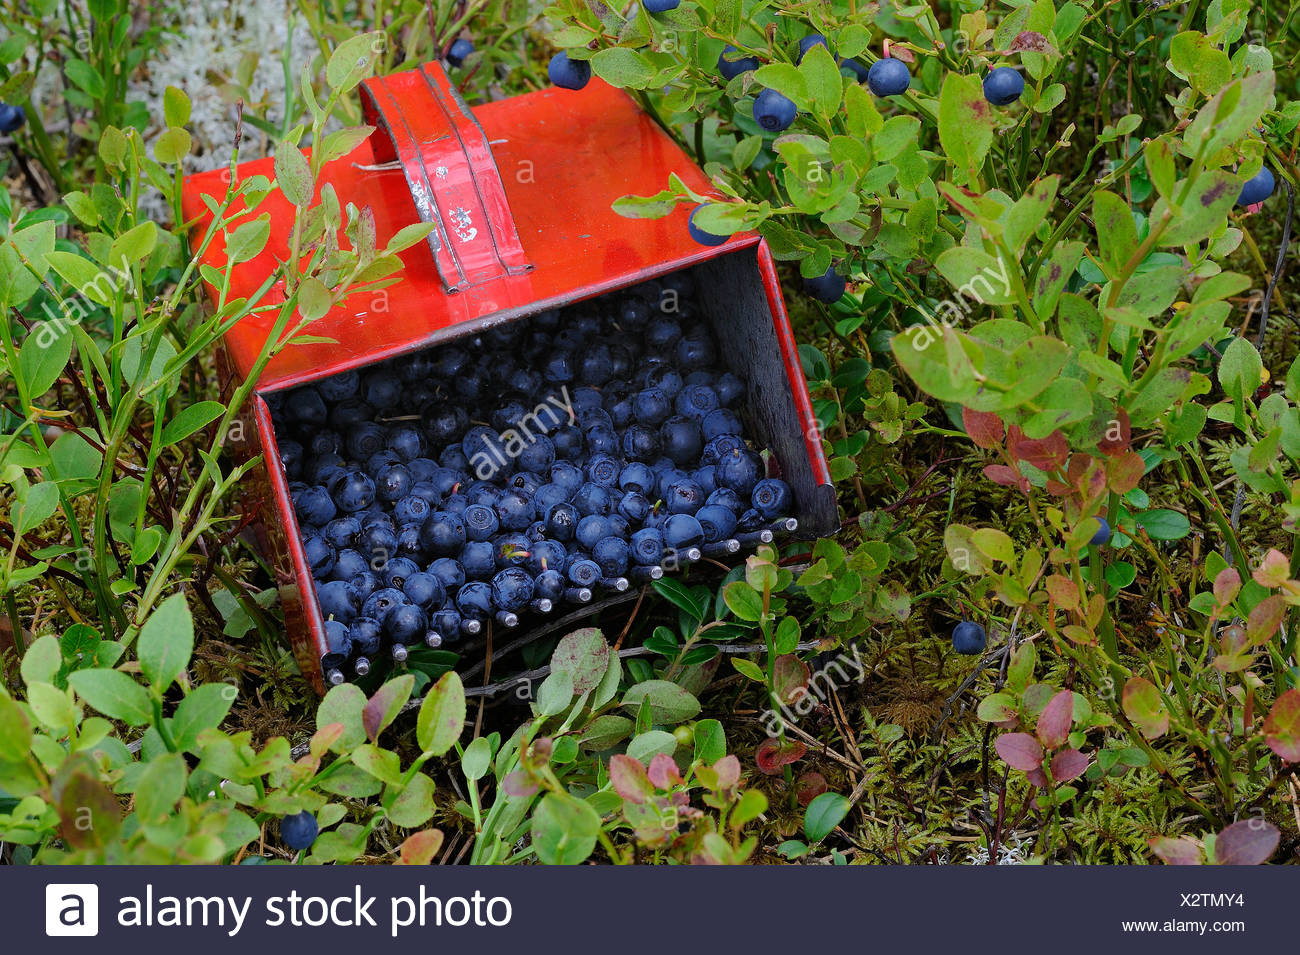 Close-up of blueberries amid leaves - Stock Image